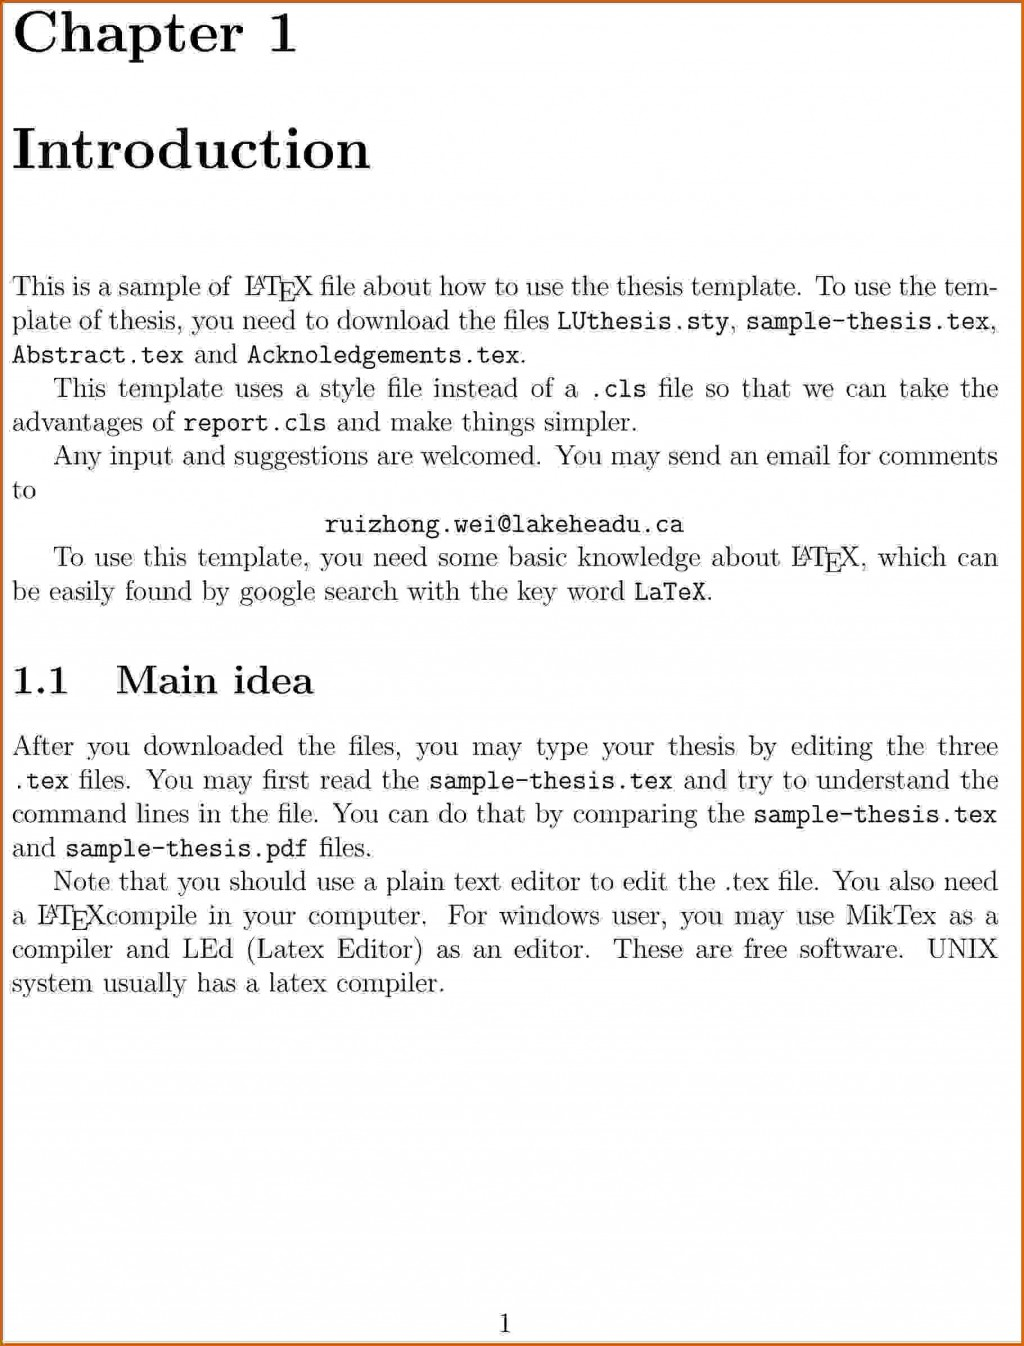 003 Essay Example Good Intros For Essays Examples Ofs Selo Yogawithjo Co Unusual Best Introductions Narrative Large